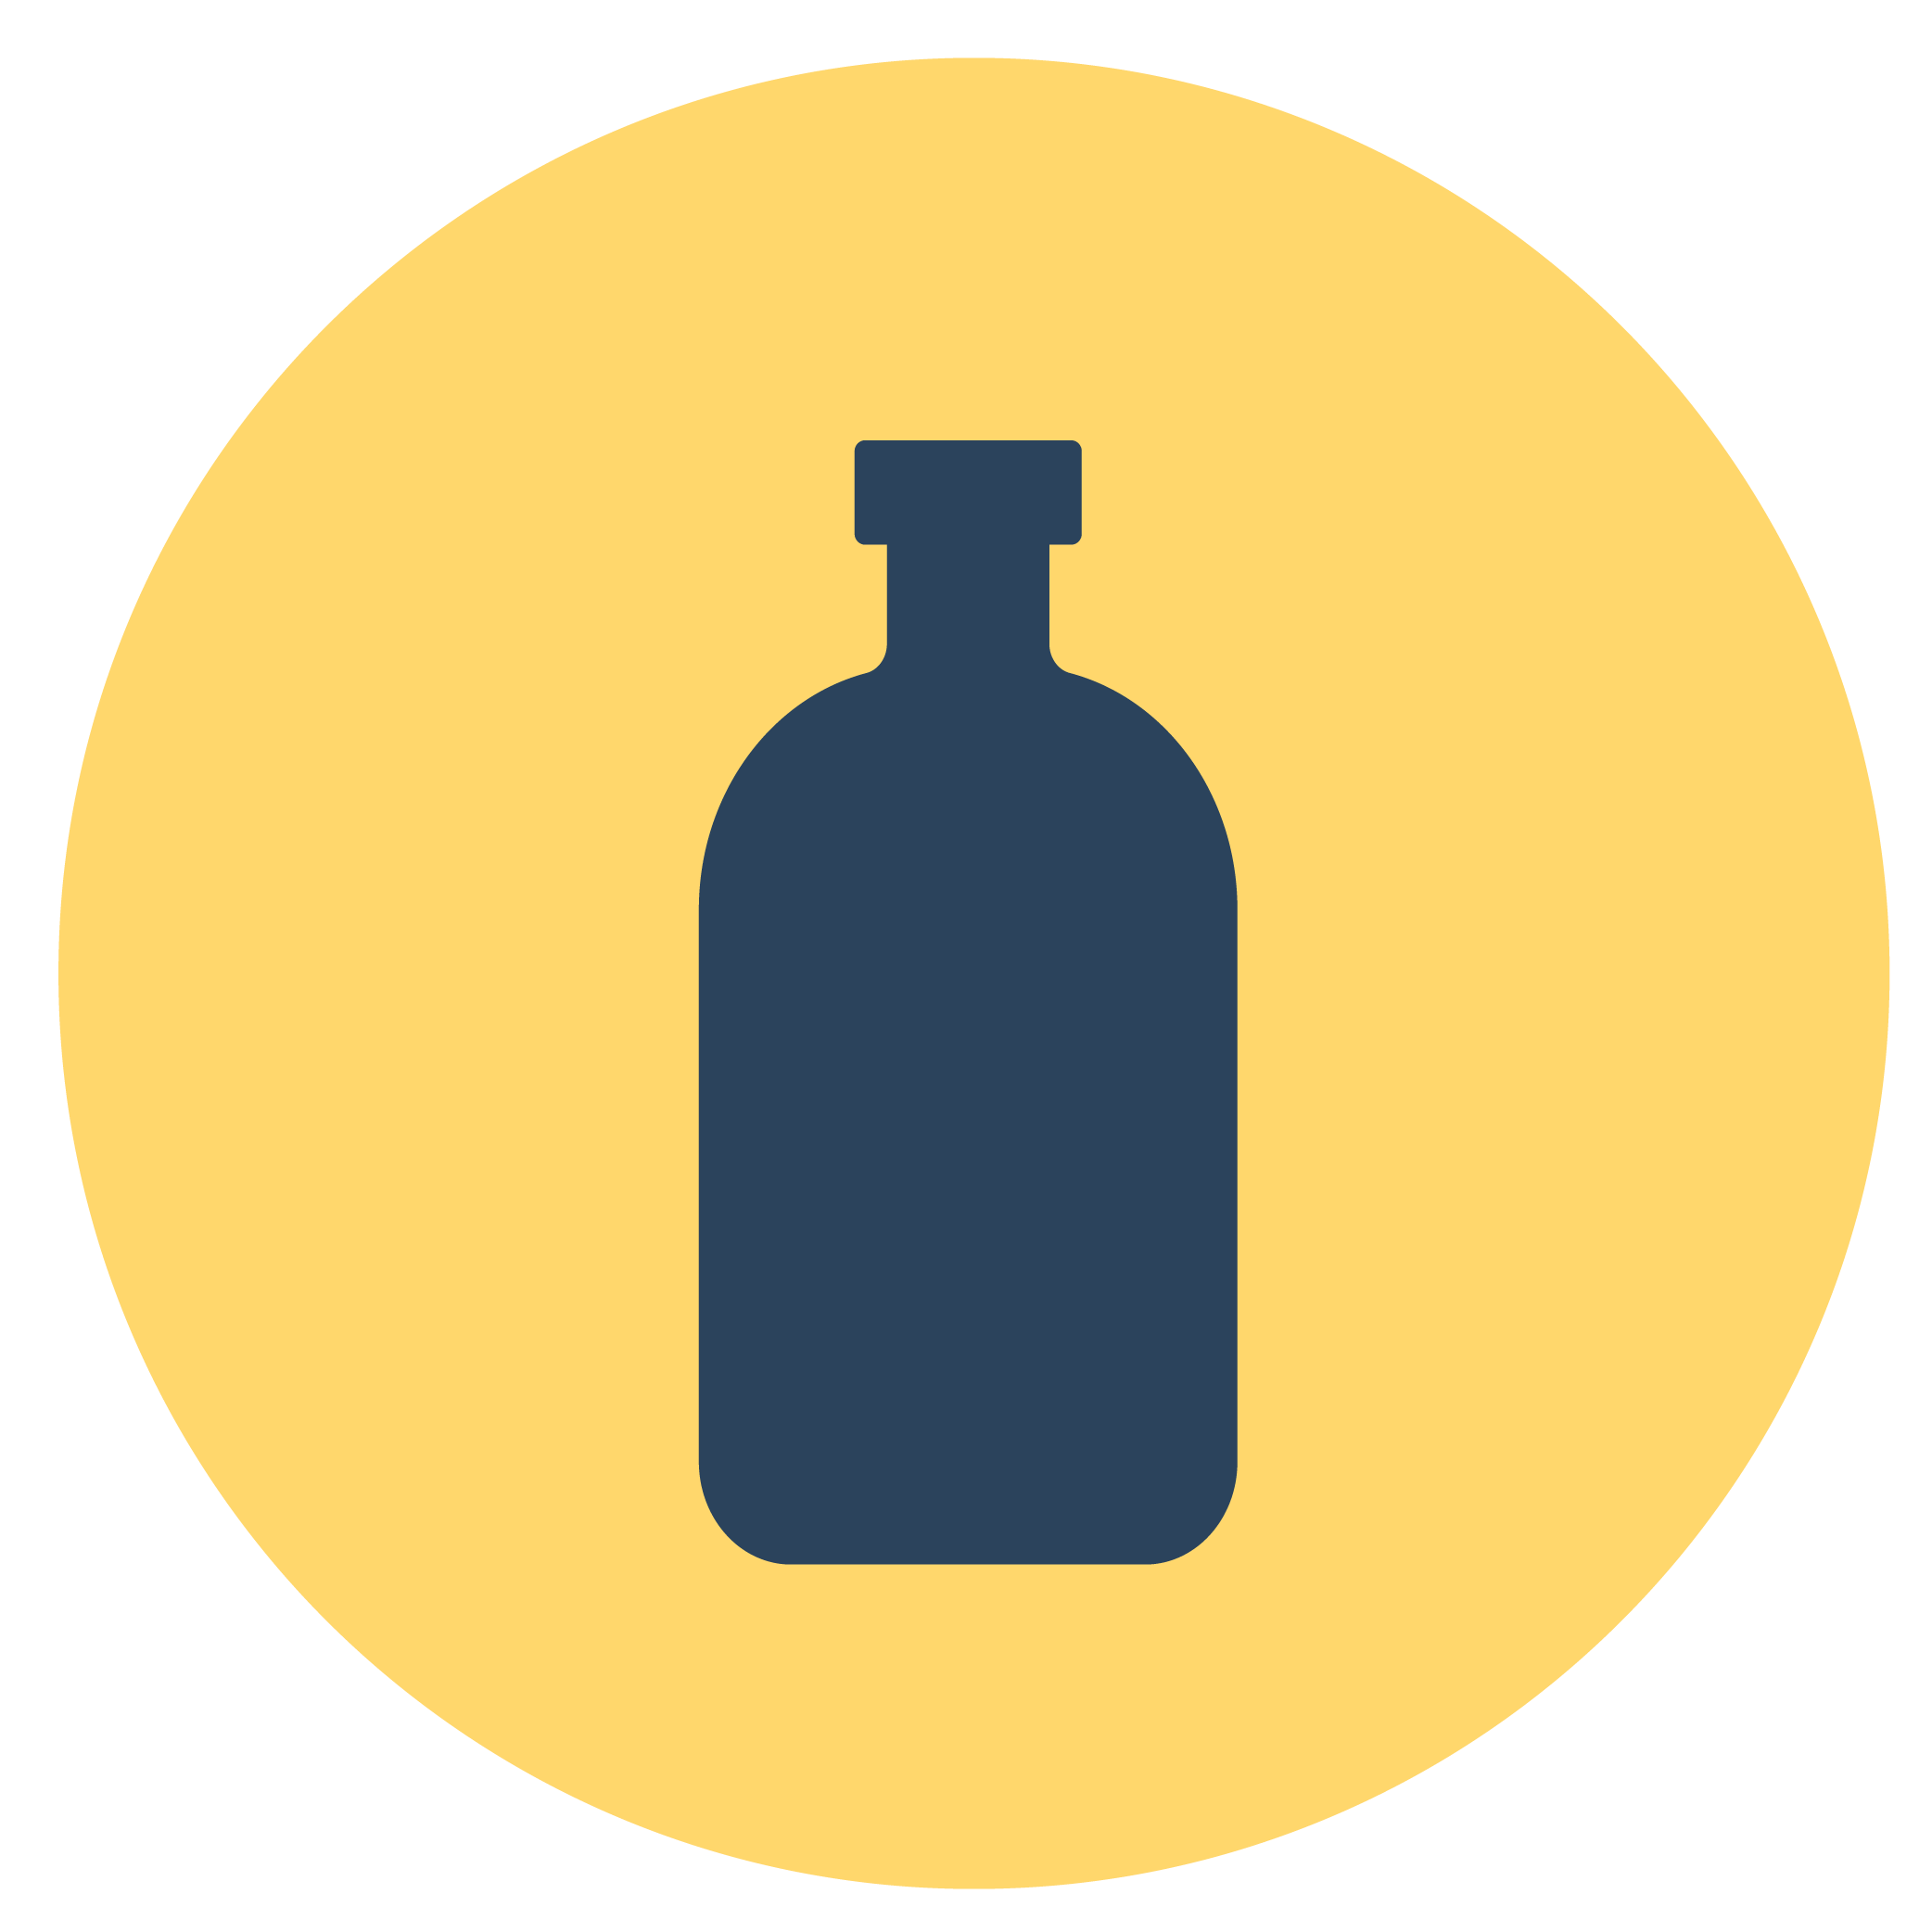 Small waste container icon